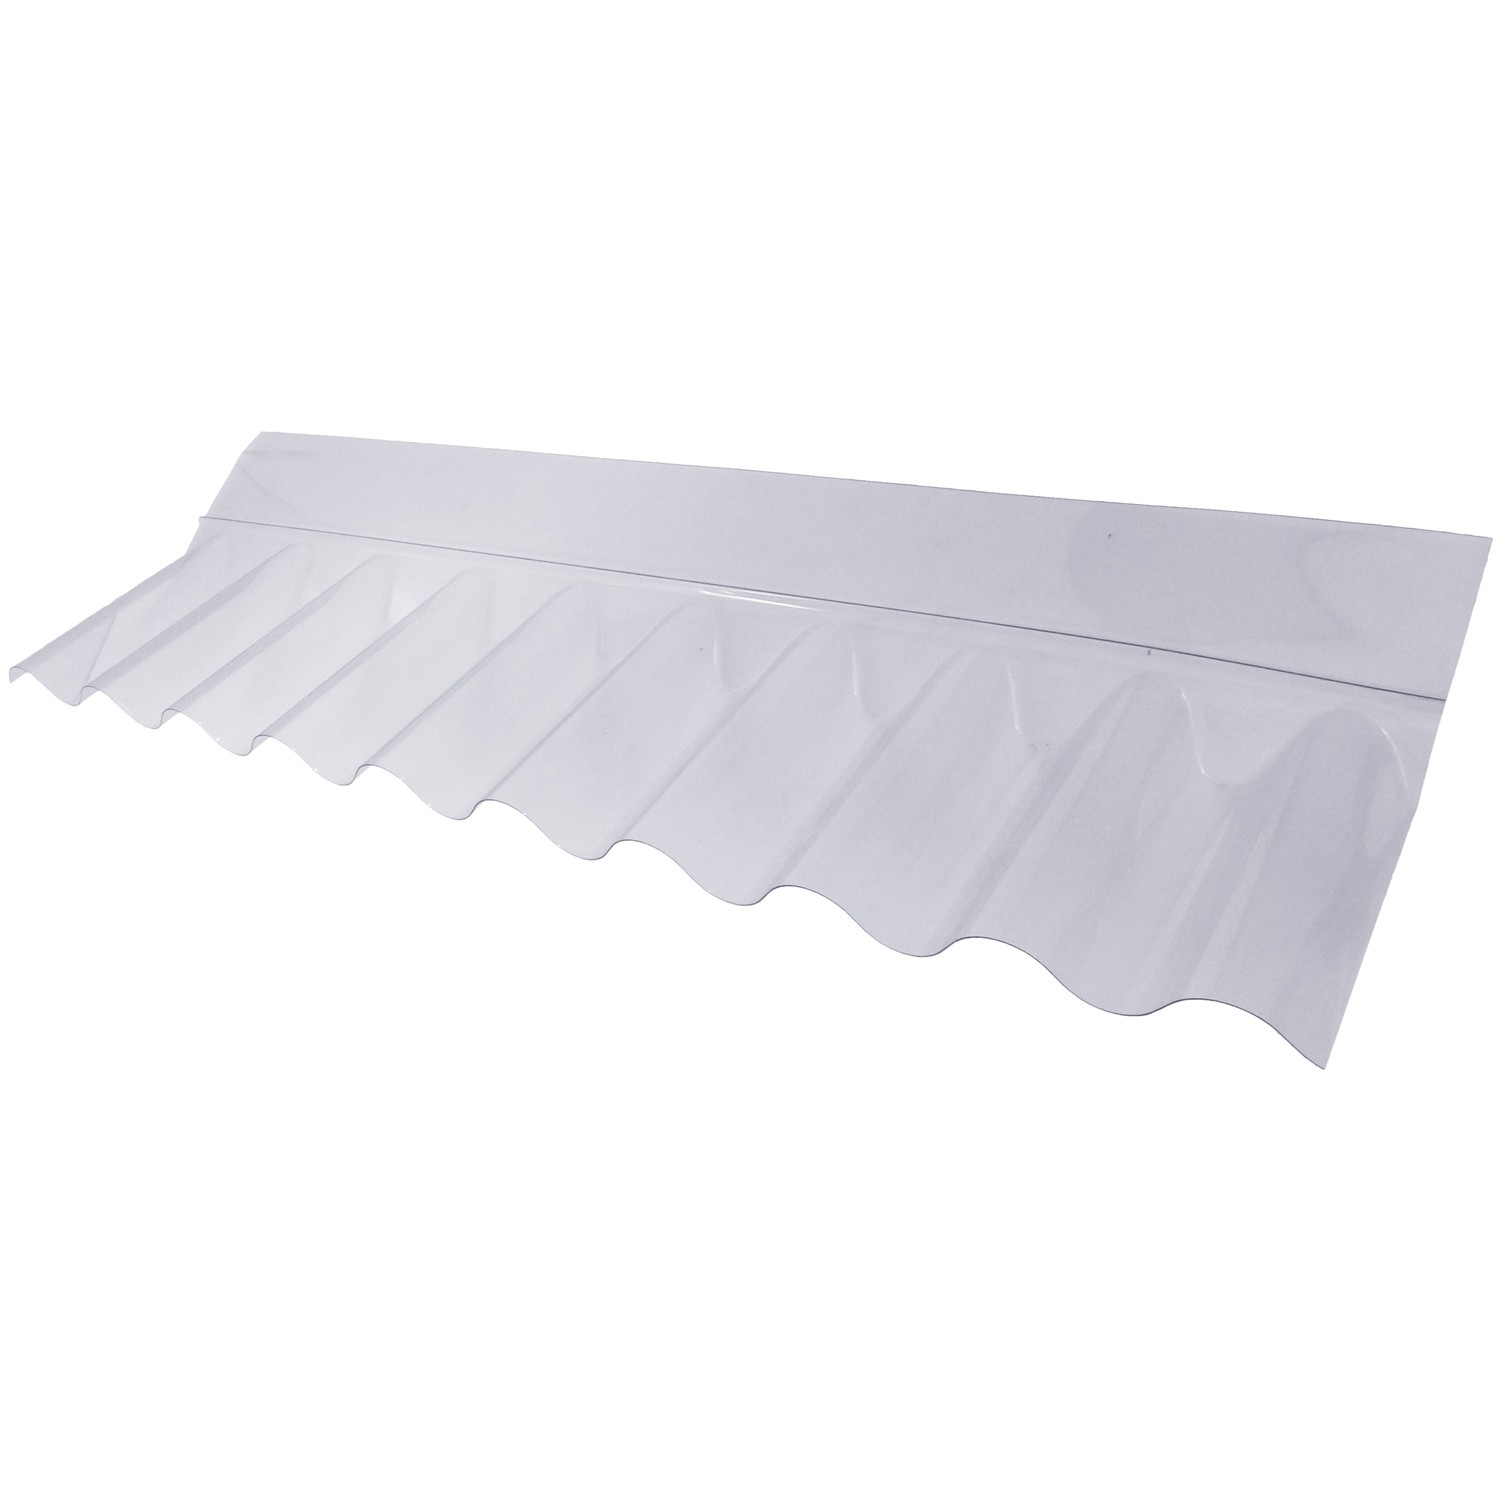 """PSD Plastic 3"""" Corrugated Roofing Sheet Wall Flashing - Clear, 704mm x 225mm x 65mm"""